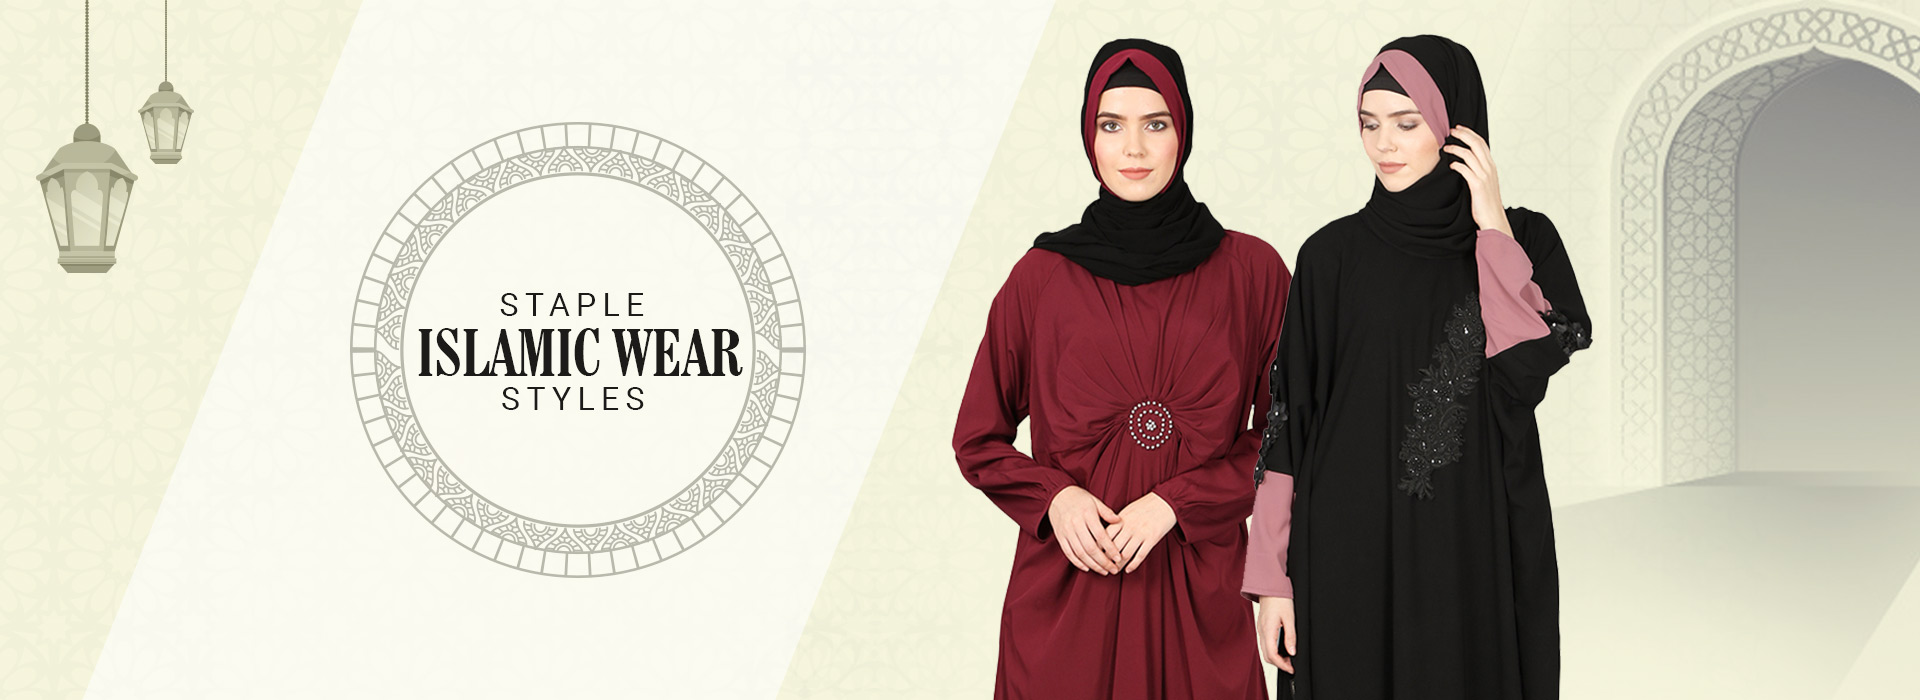 Staple Islamic Wear Styles